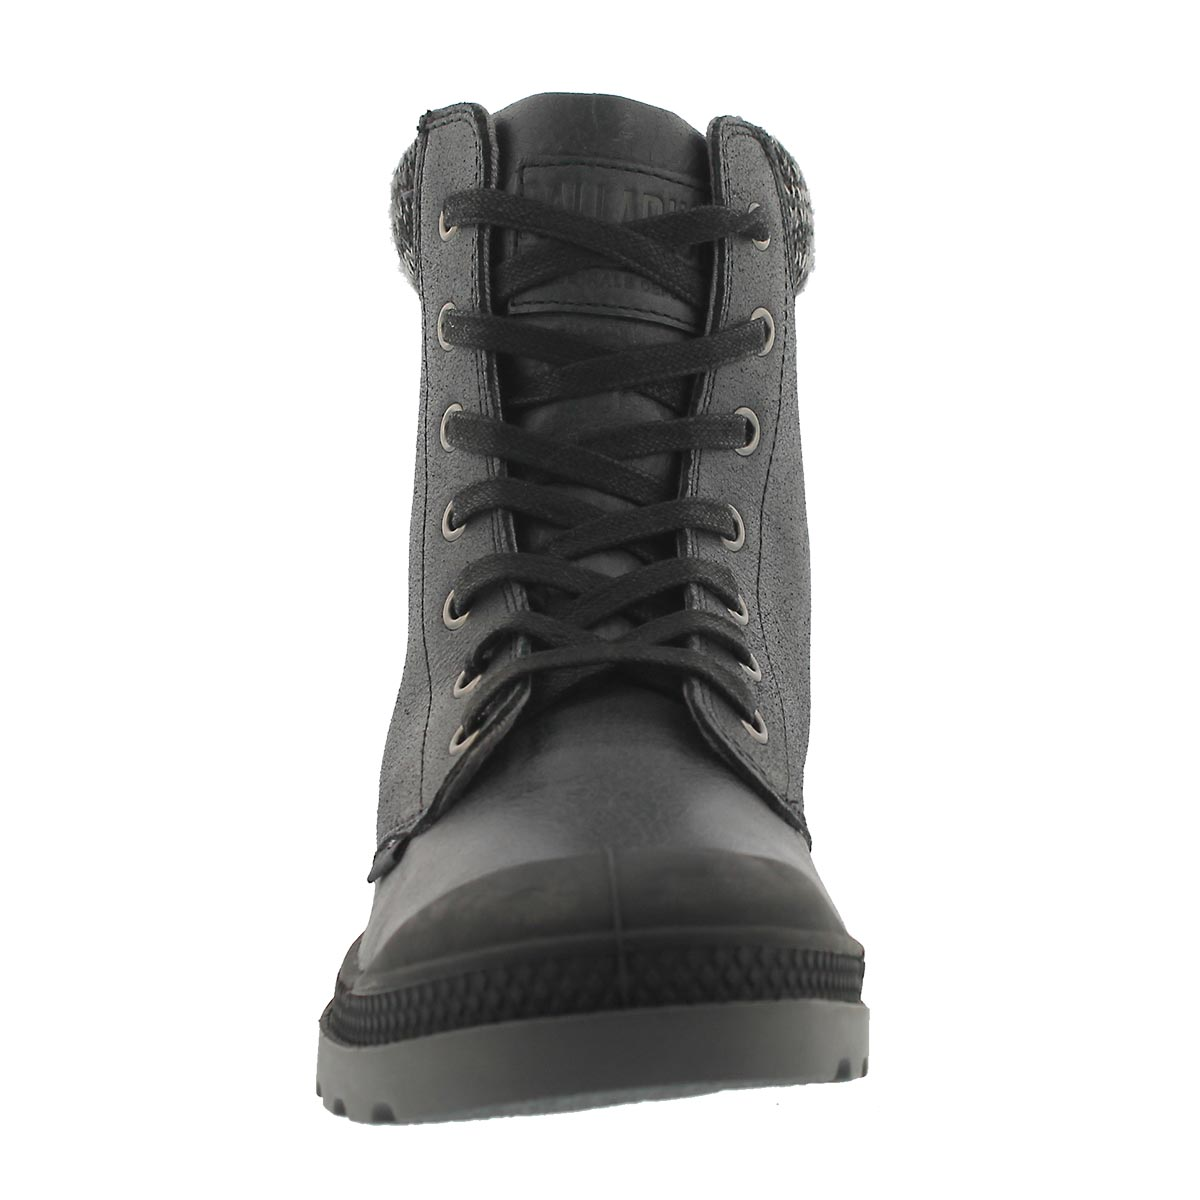 Lds PampaHiKnit LP blk/gry ankle boot